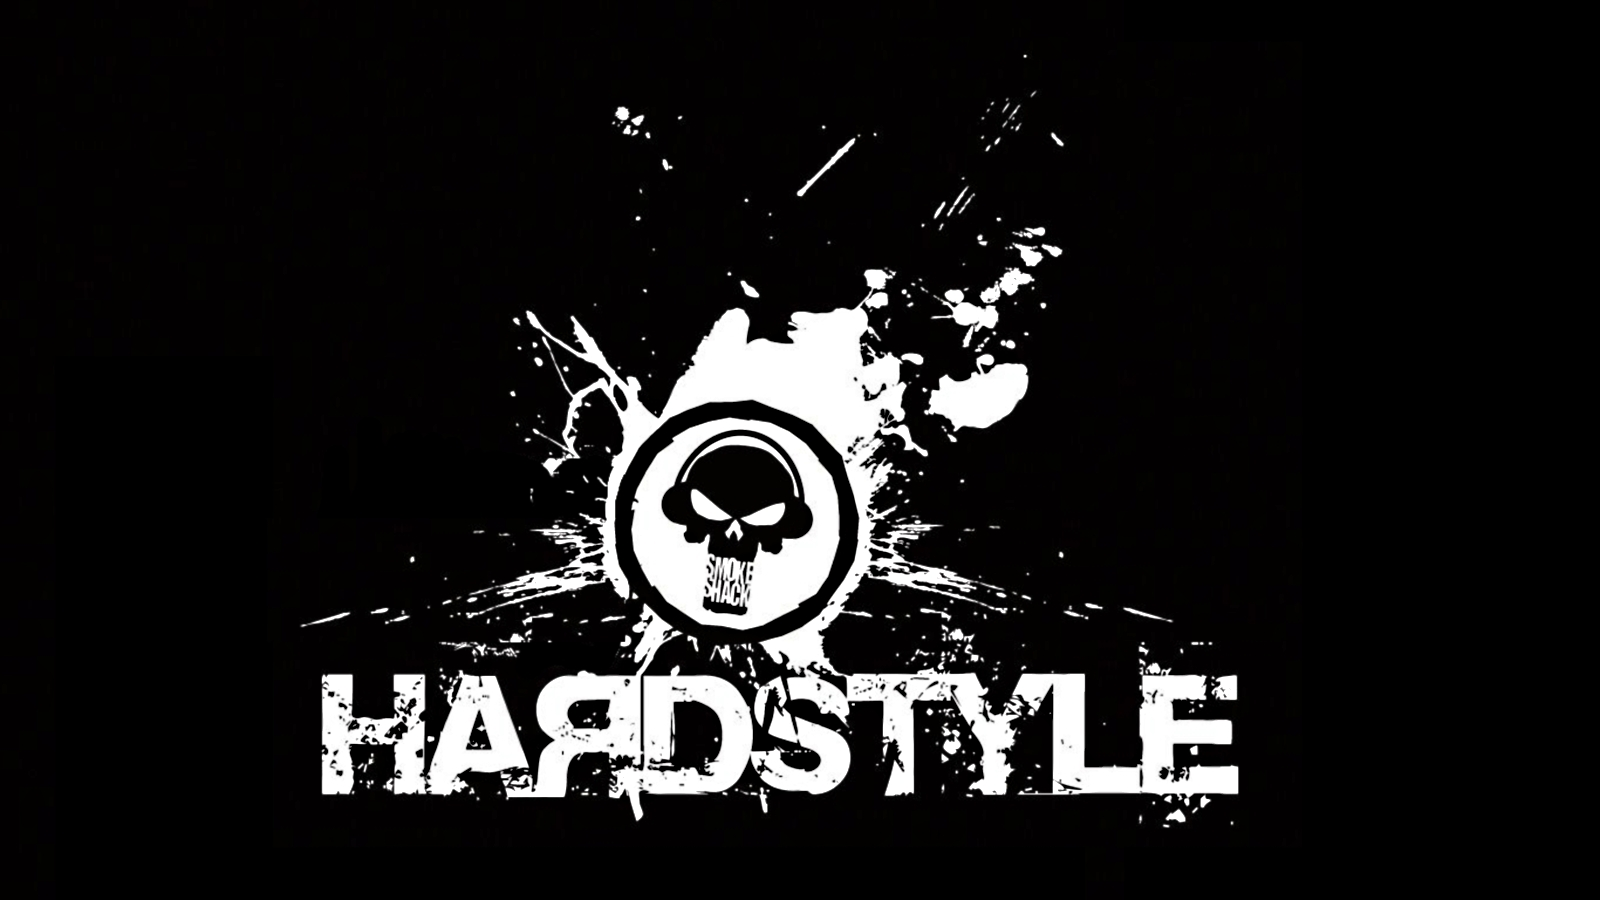 Smokeshack Hardstyle Wallpaper And Background Image